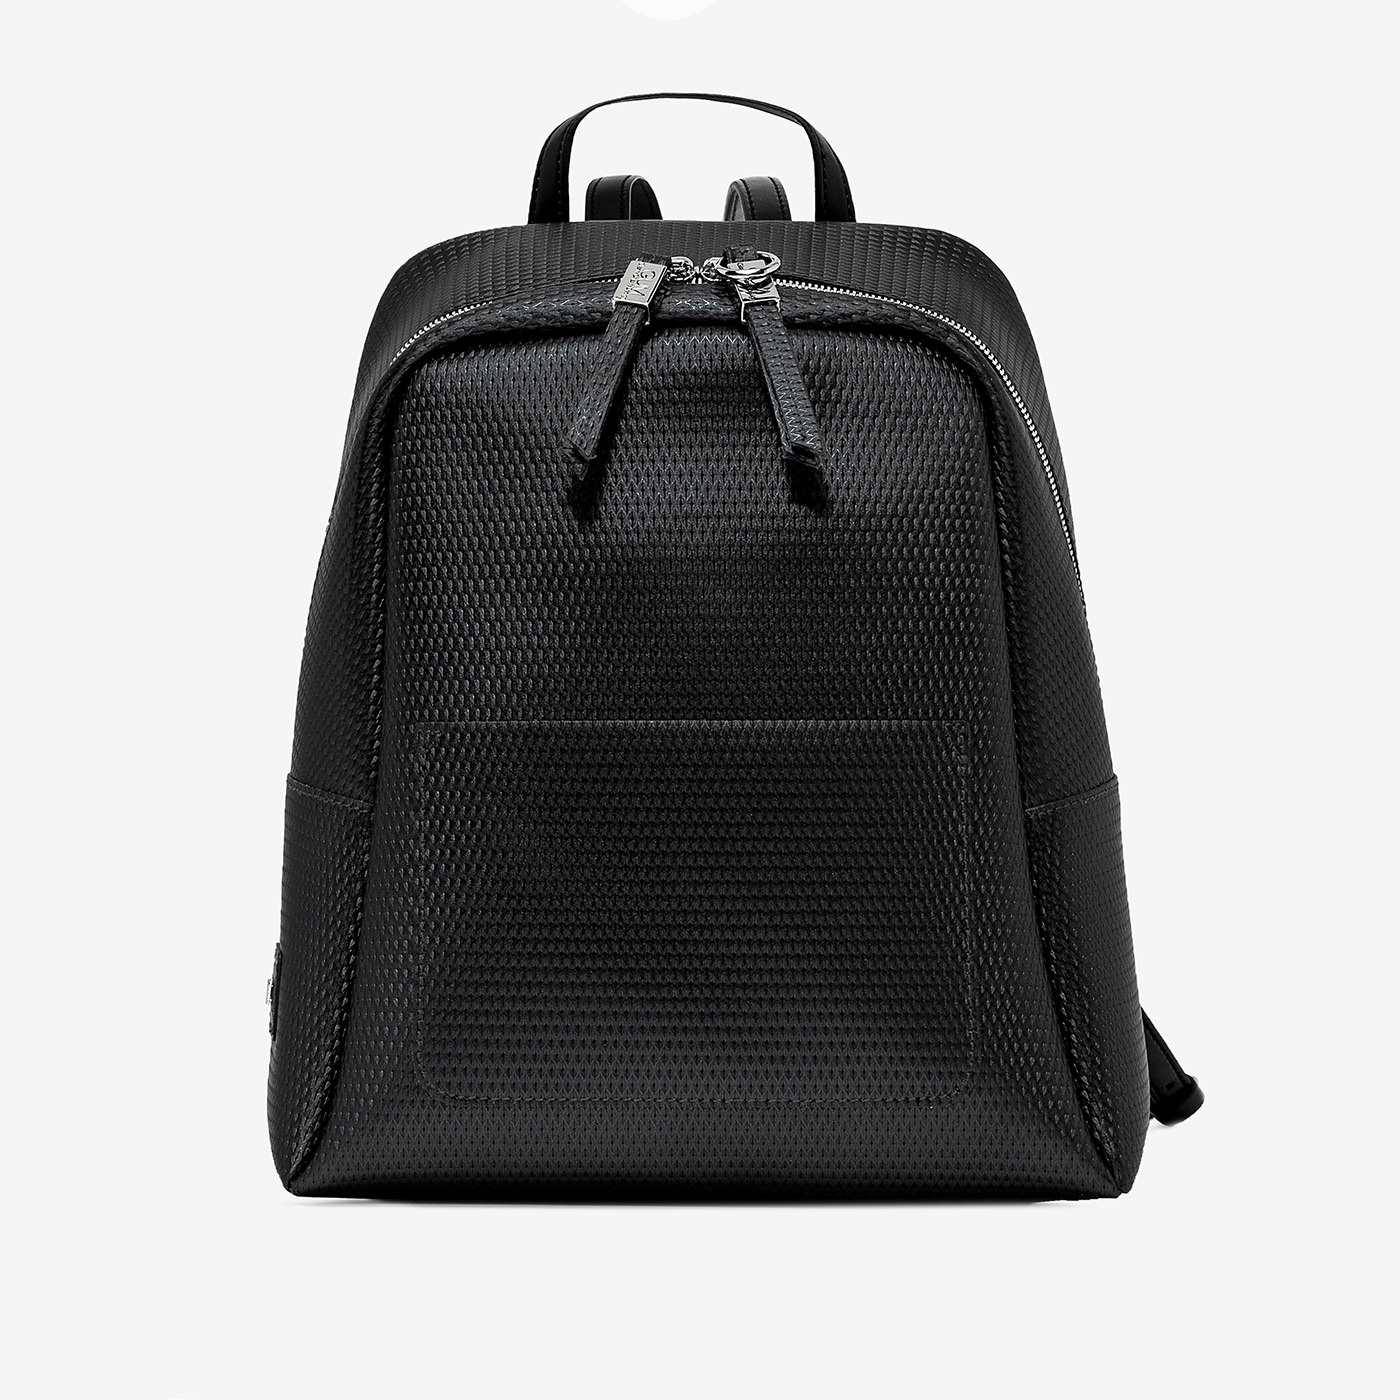 GUM: NINE BACKPACK WITH COLOUR PATTERN